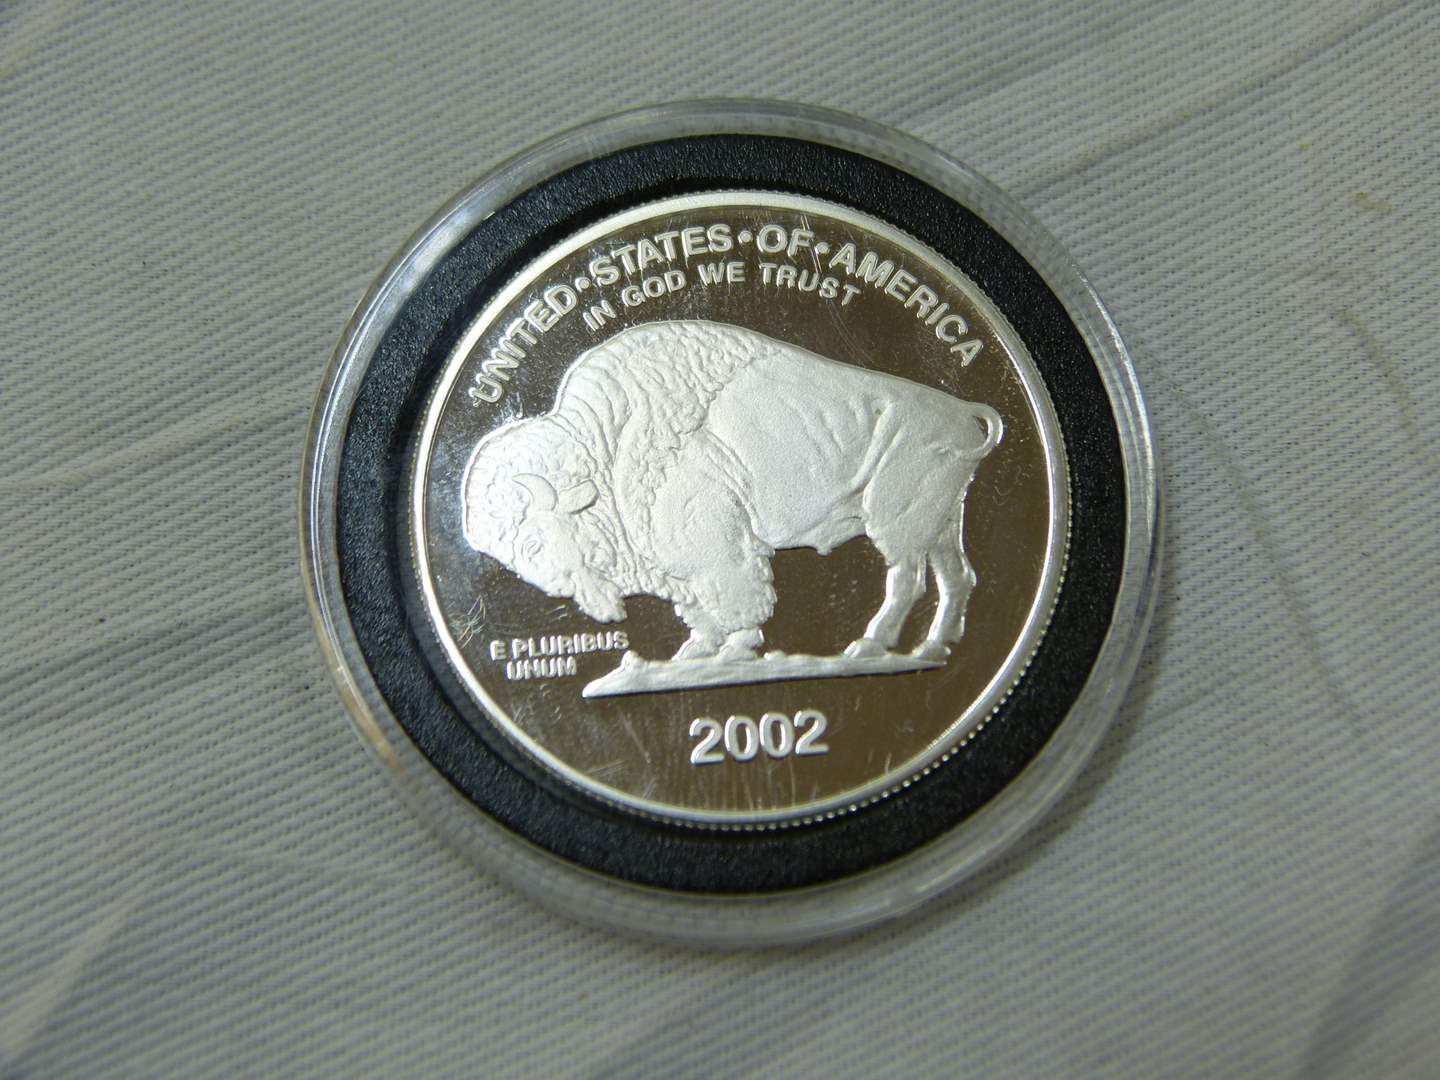 Lot # 154  2002 Buffalo Indian Head .999 one ounce silver bullion (main image)